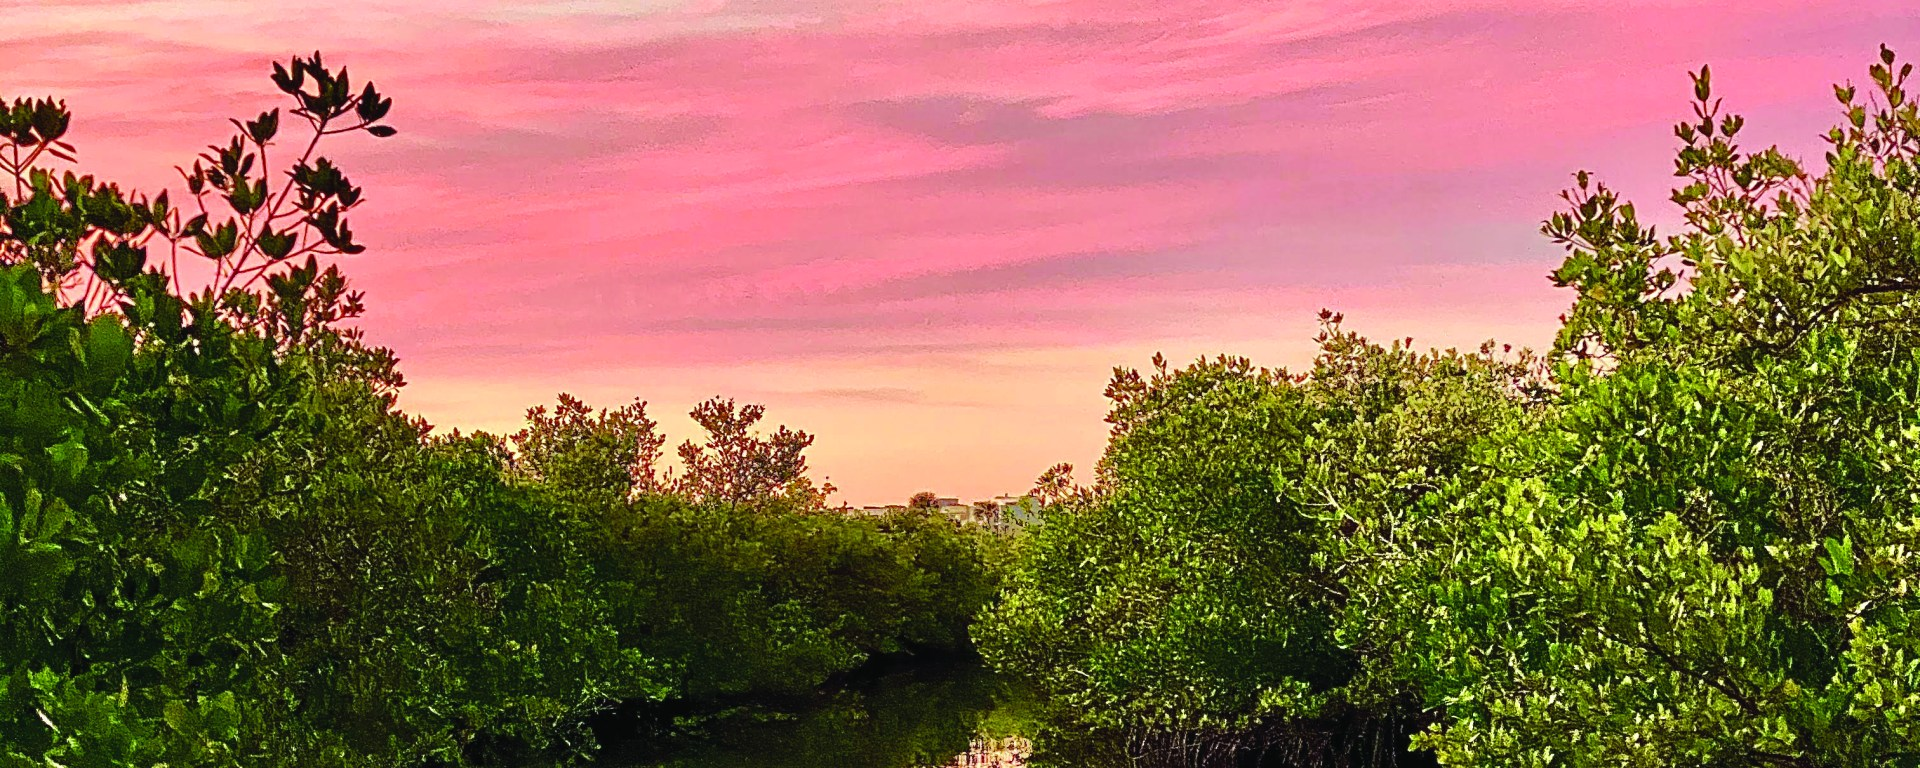 pink sunset over water and green plants